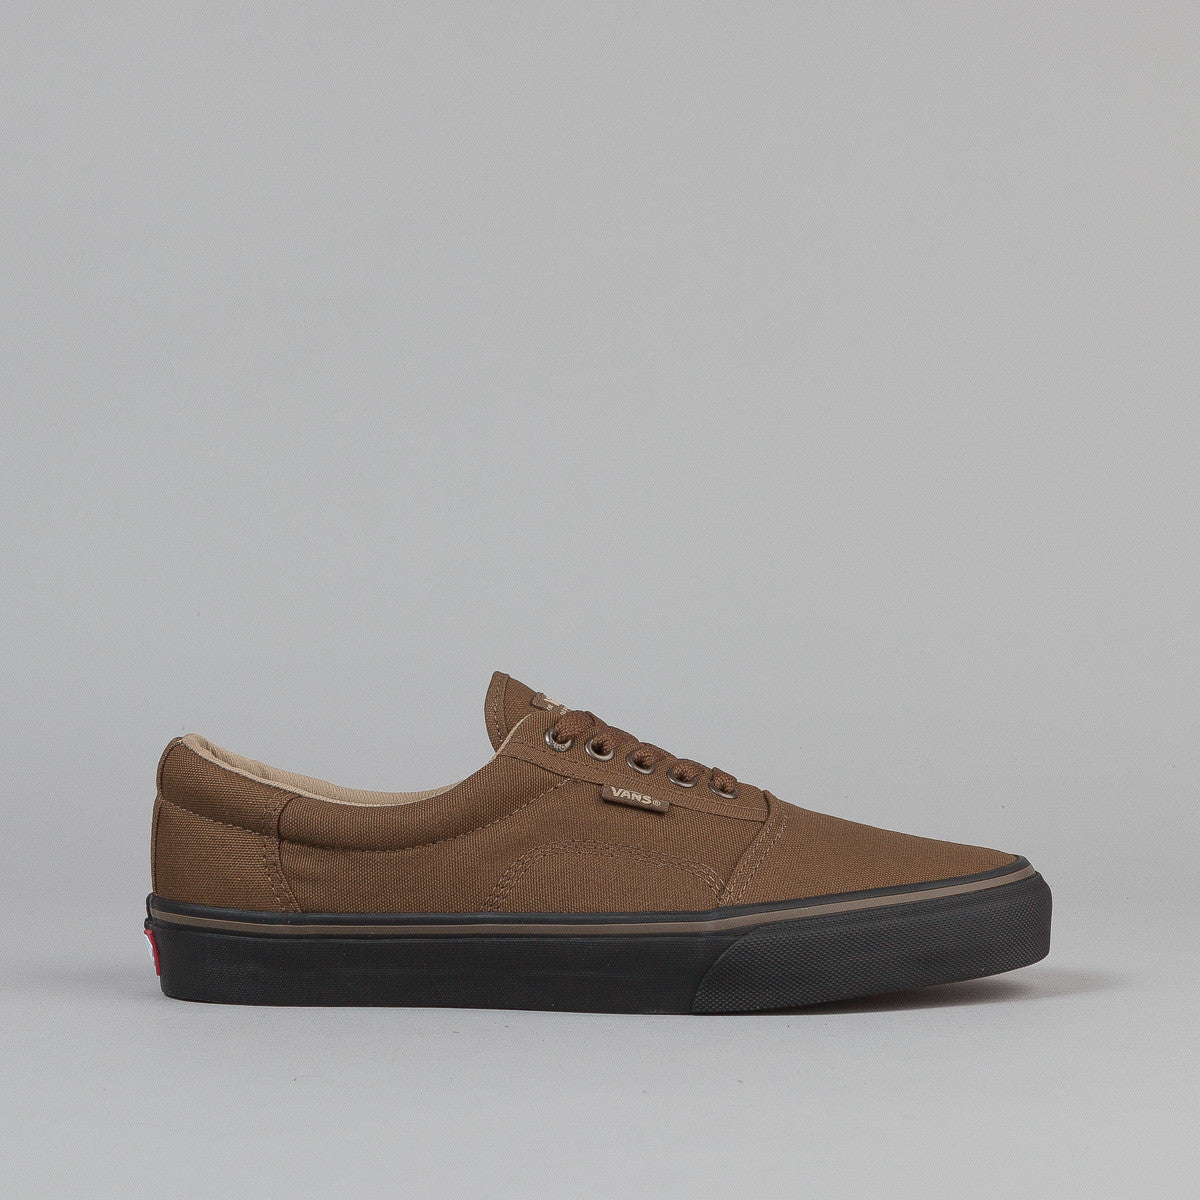 Vans Rowley Shoes - Teak / Black